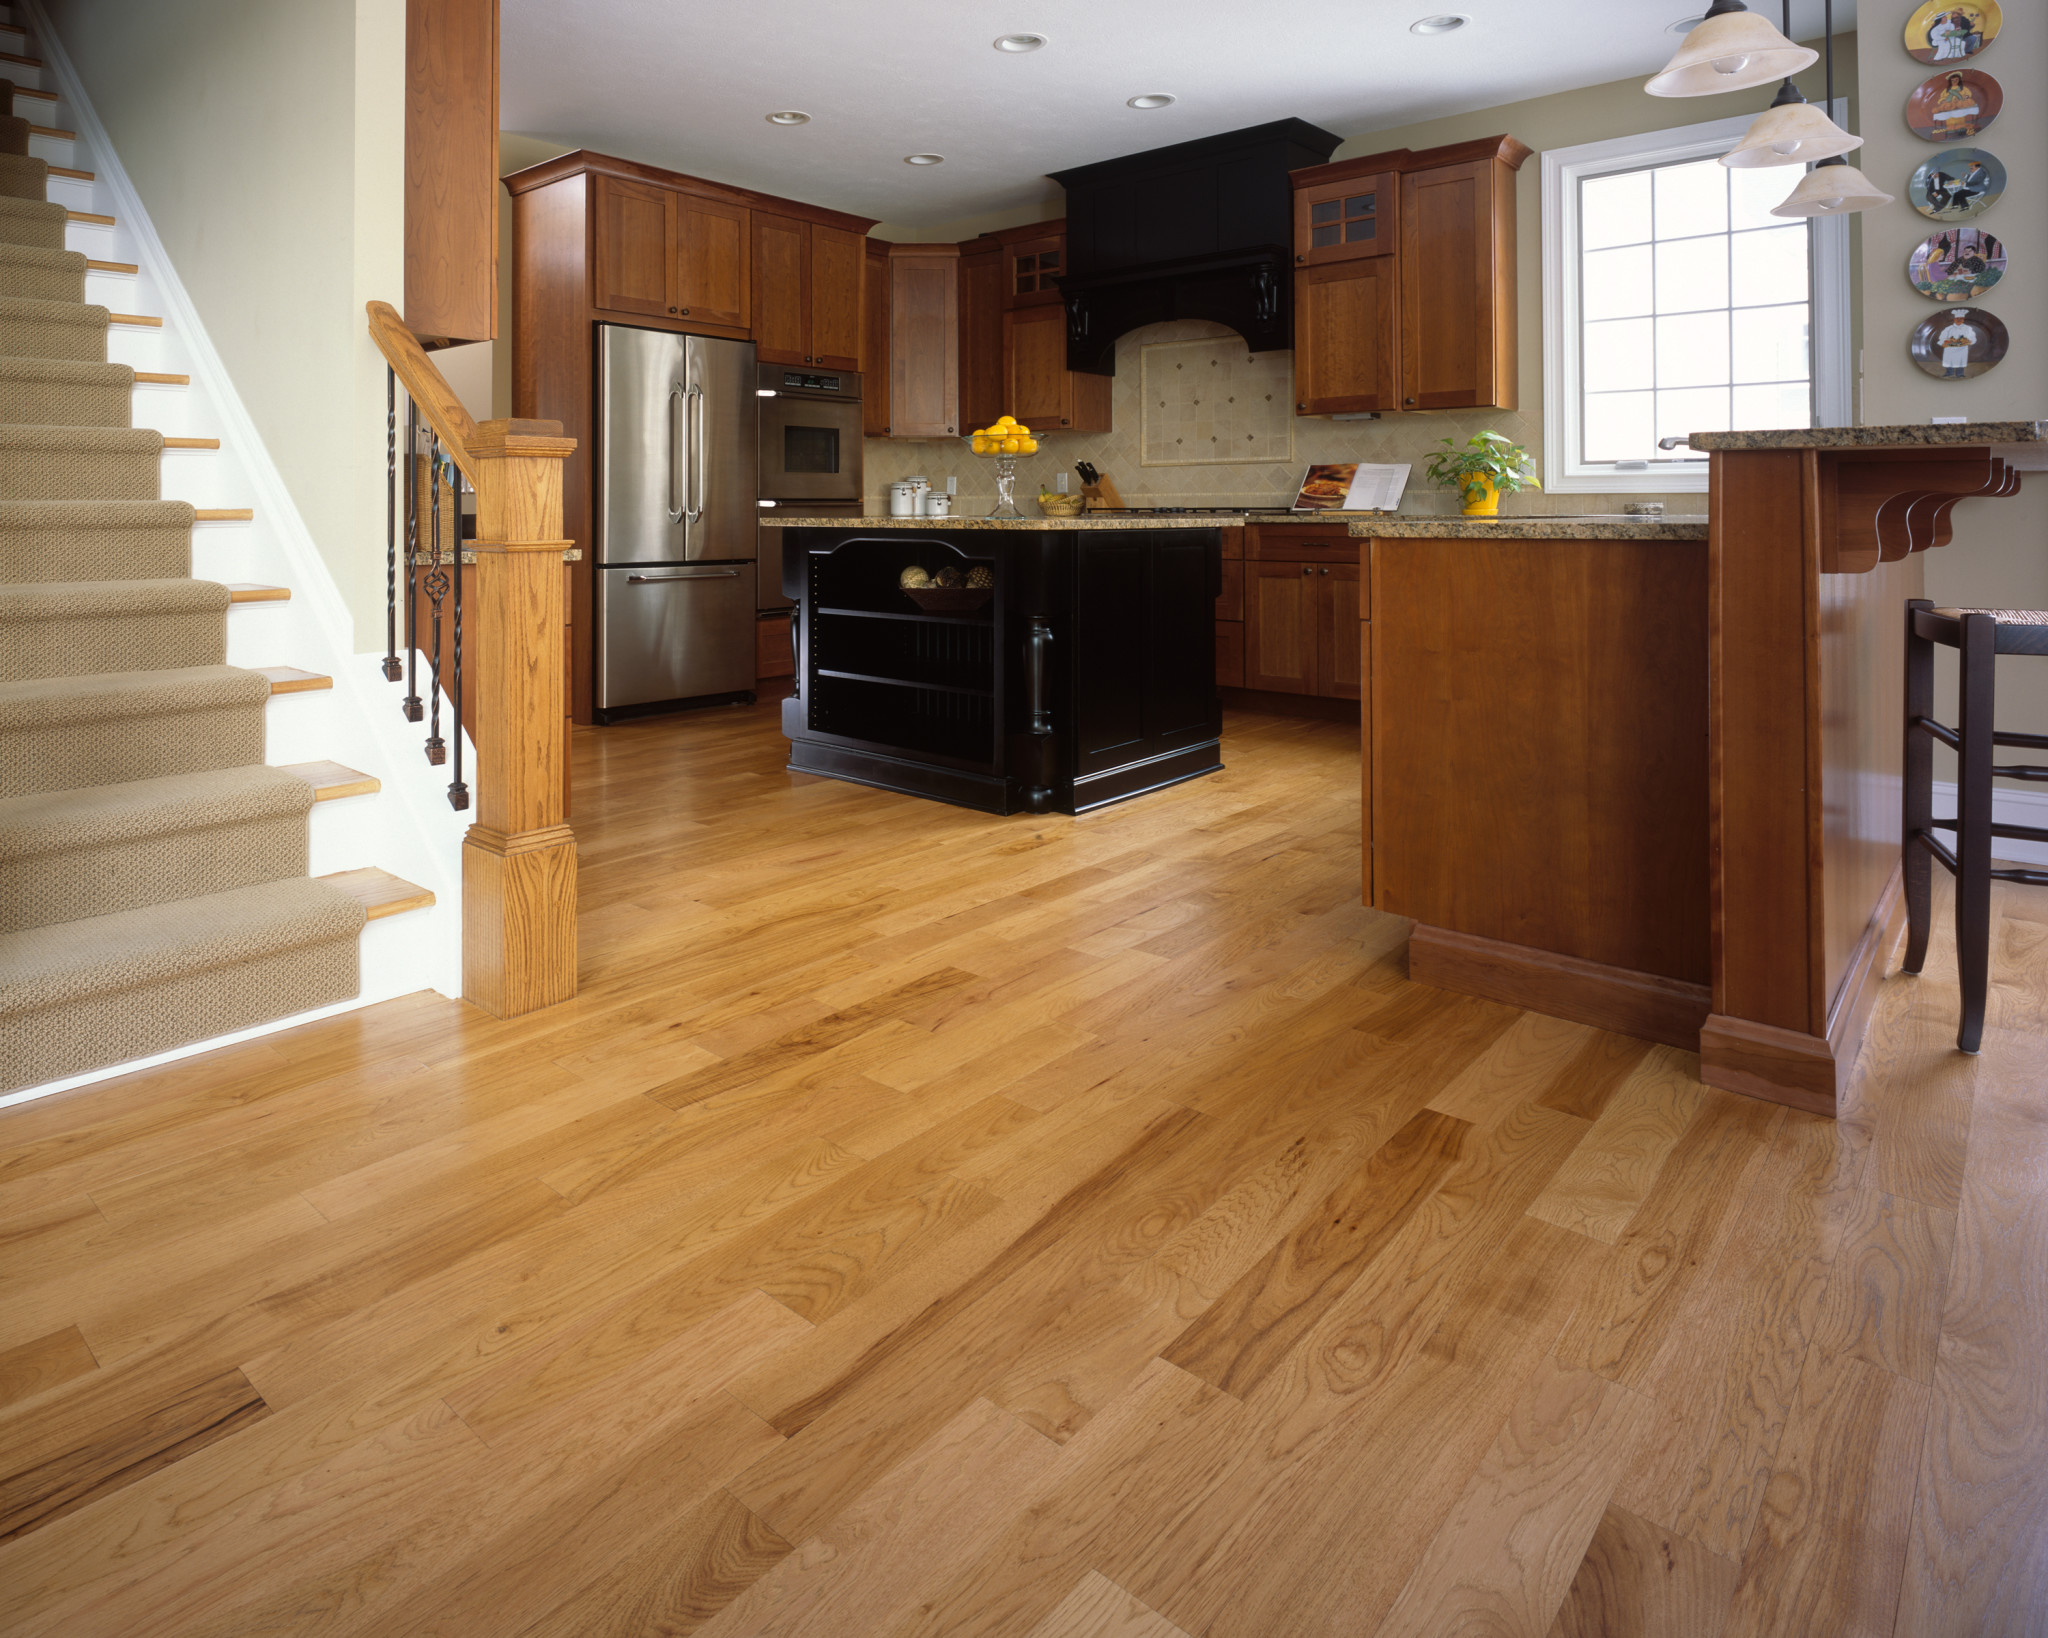 Wood Floor Kitchen Wood Floors Tile Linoleum Jmarvinhandyman